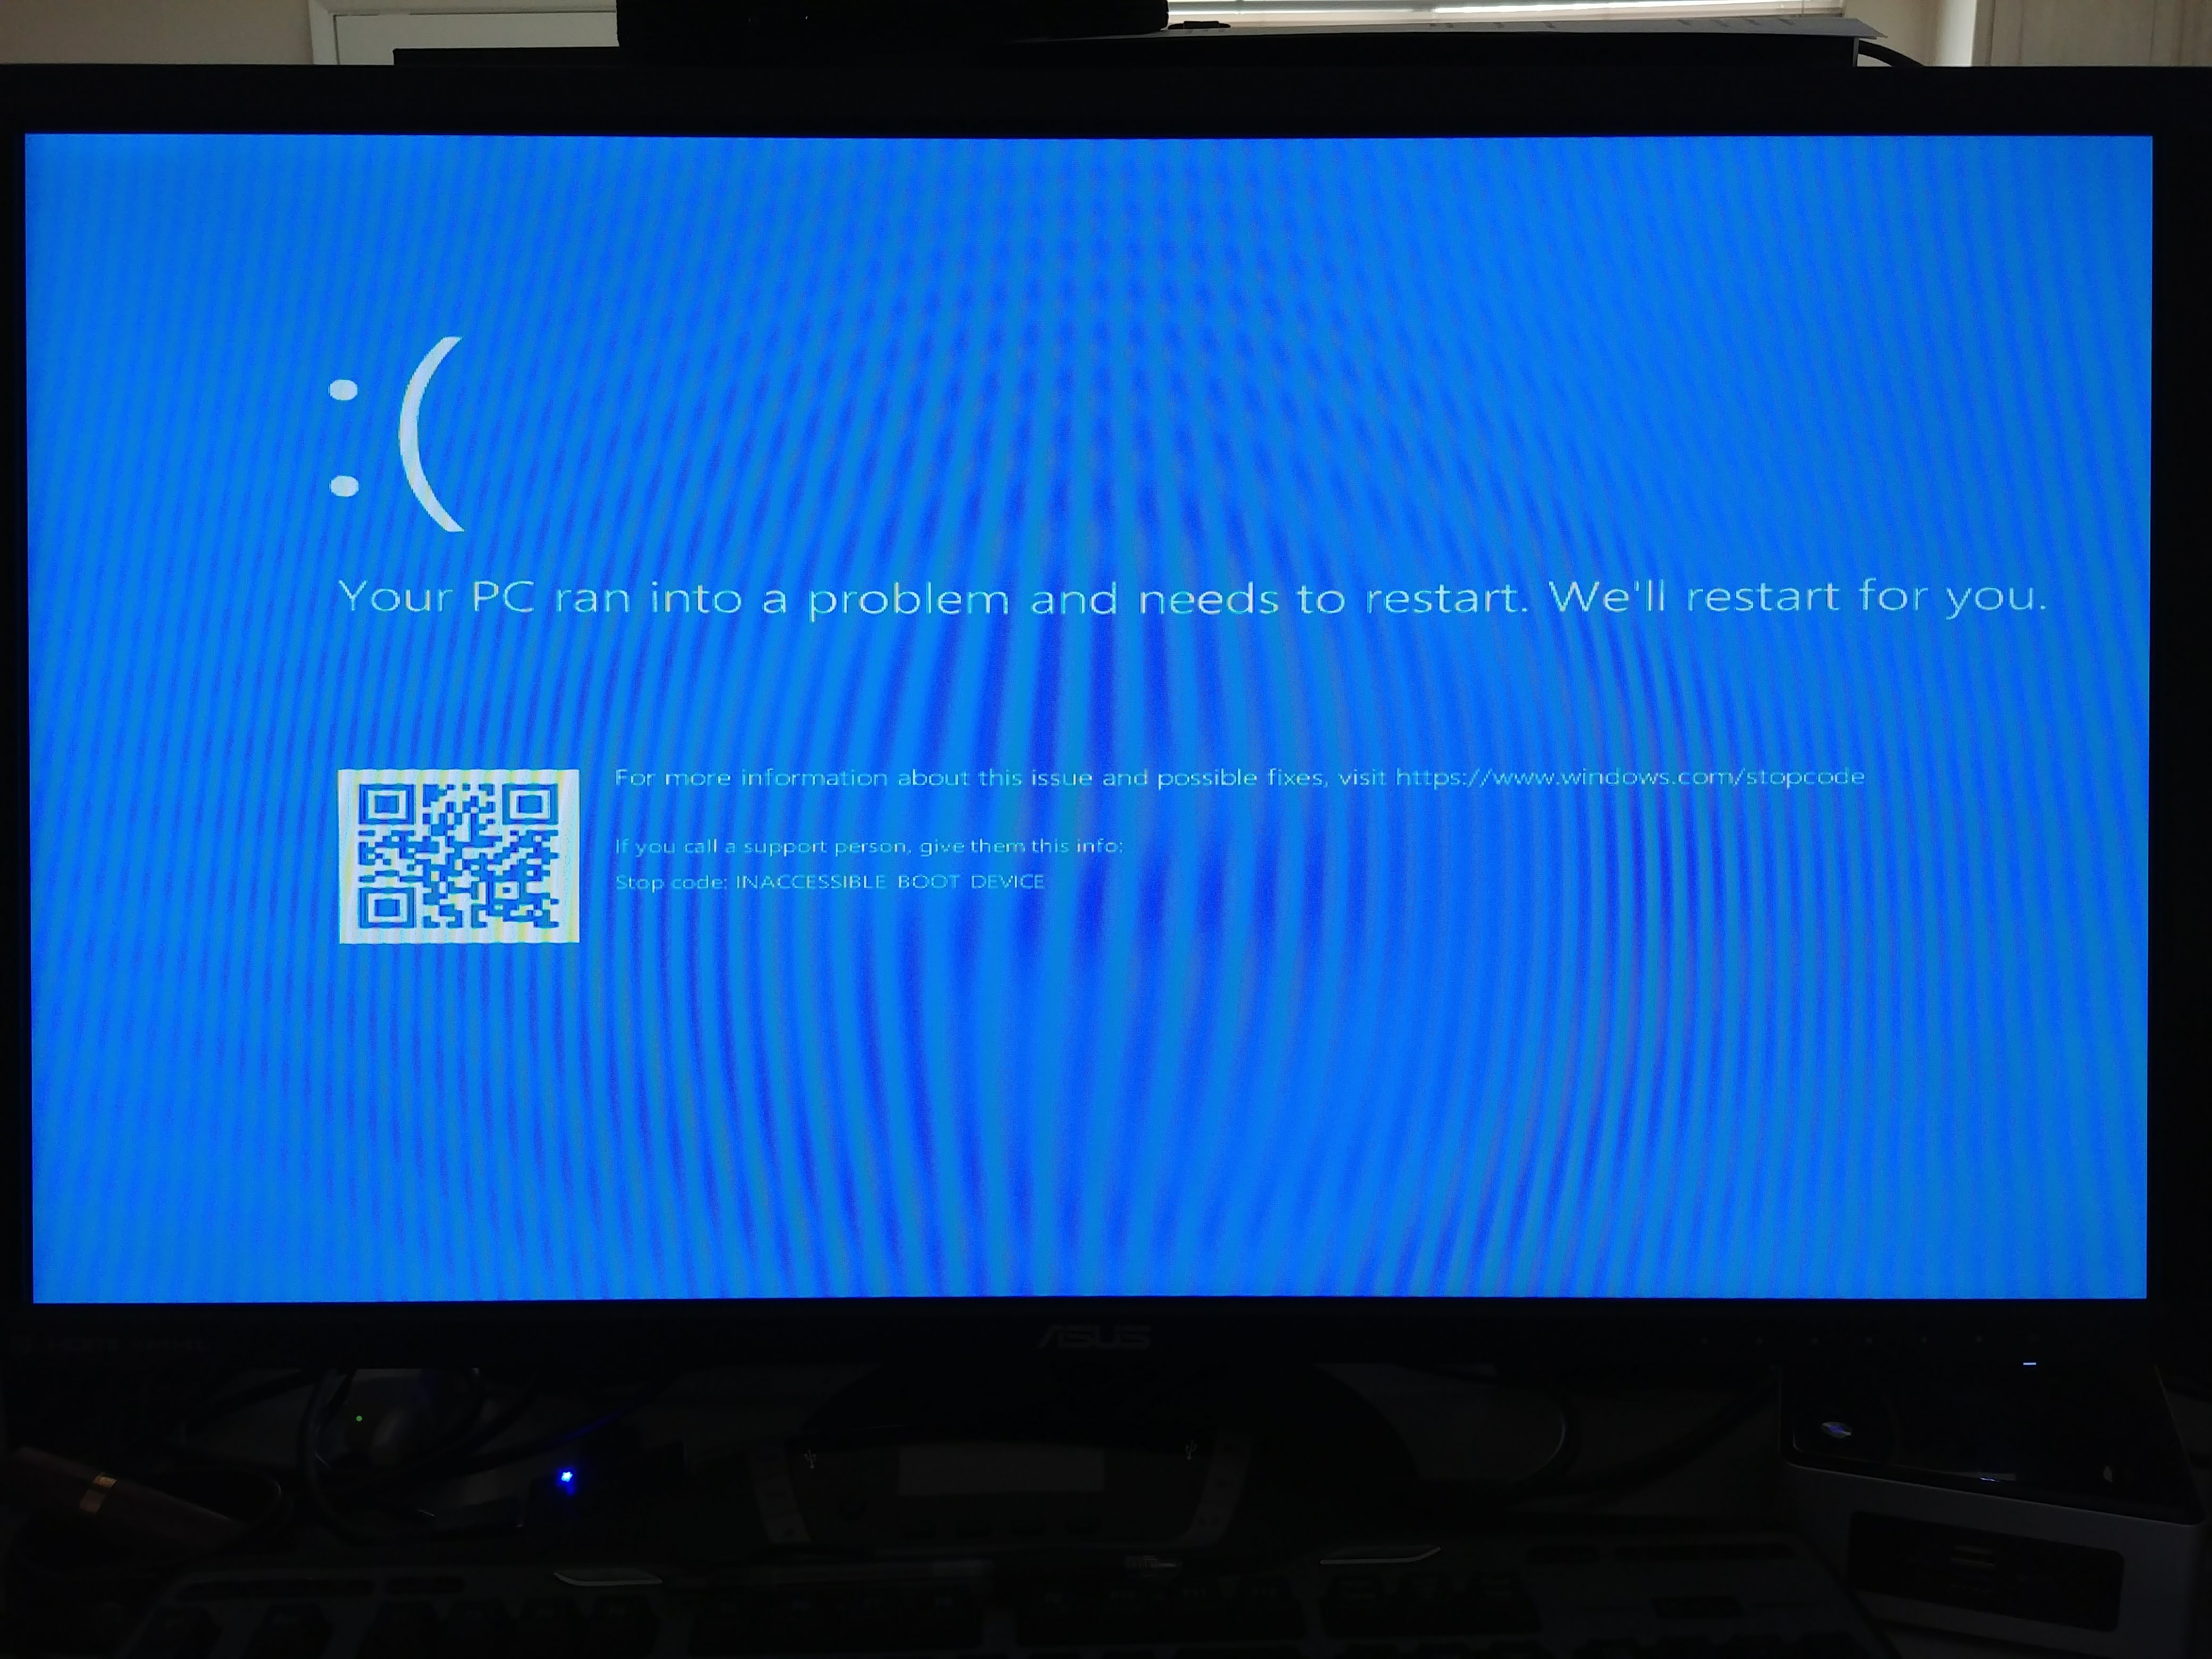 Windows 10 stop code error inaccessible_boot_device | [Solved